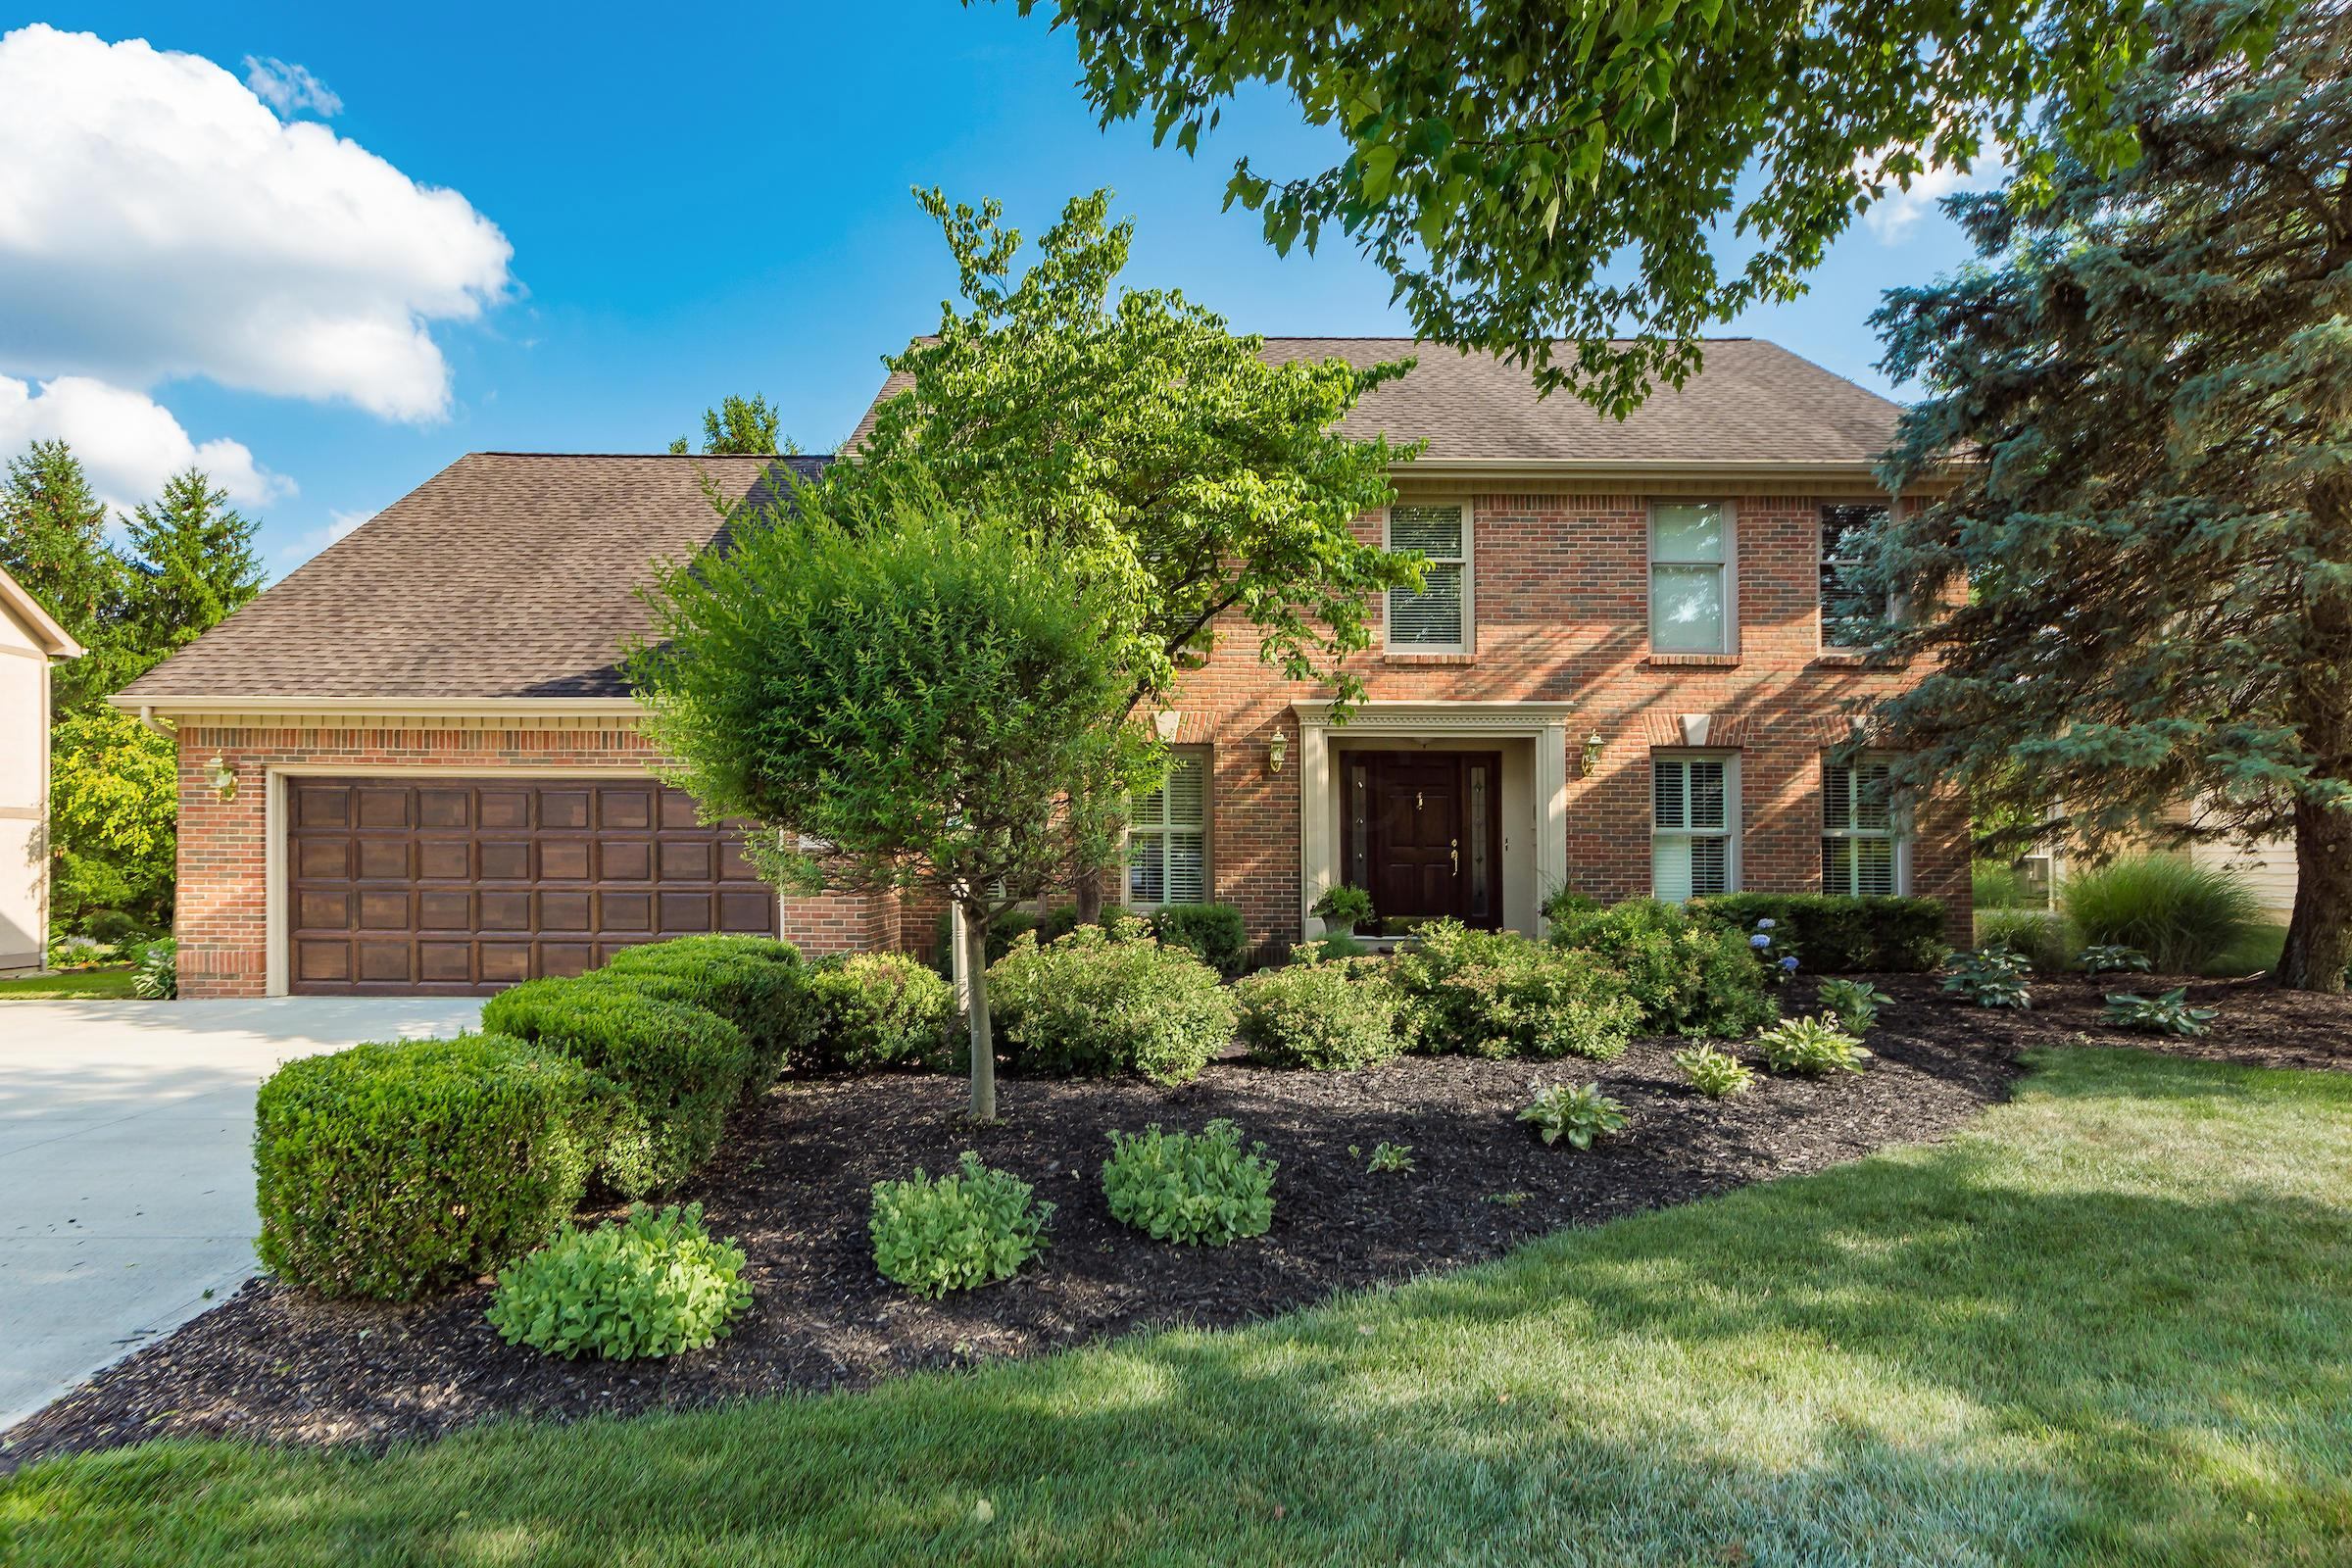 5715 Rothesay Drive, Dublin, Ohio 43017, 4 Bedrooms Bedrooms, ,4 BathroomsBathrooms,Residential,For Sale,Rothesay,220024258